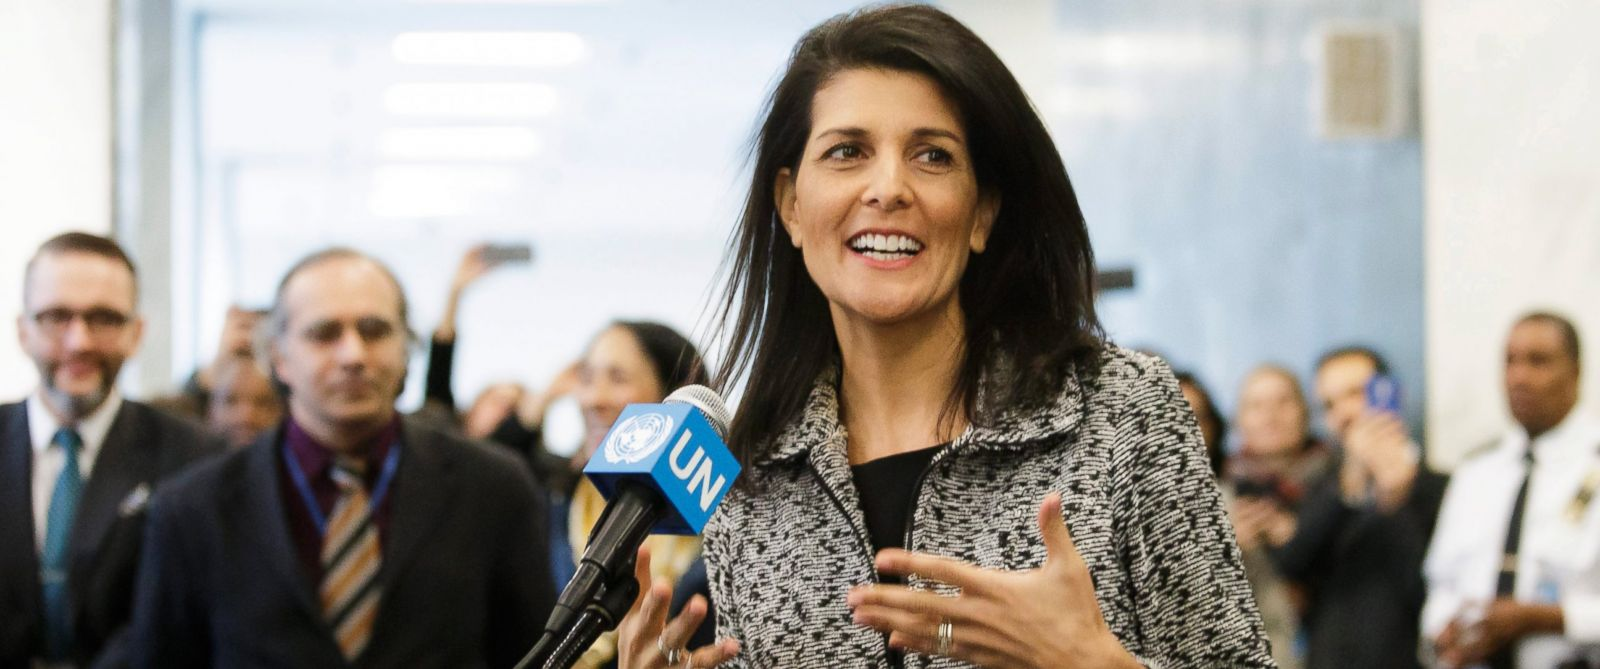 Image result for nikki haley at the UN